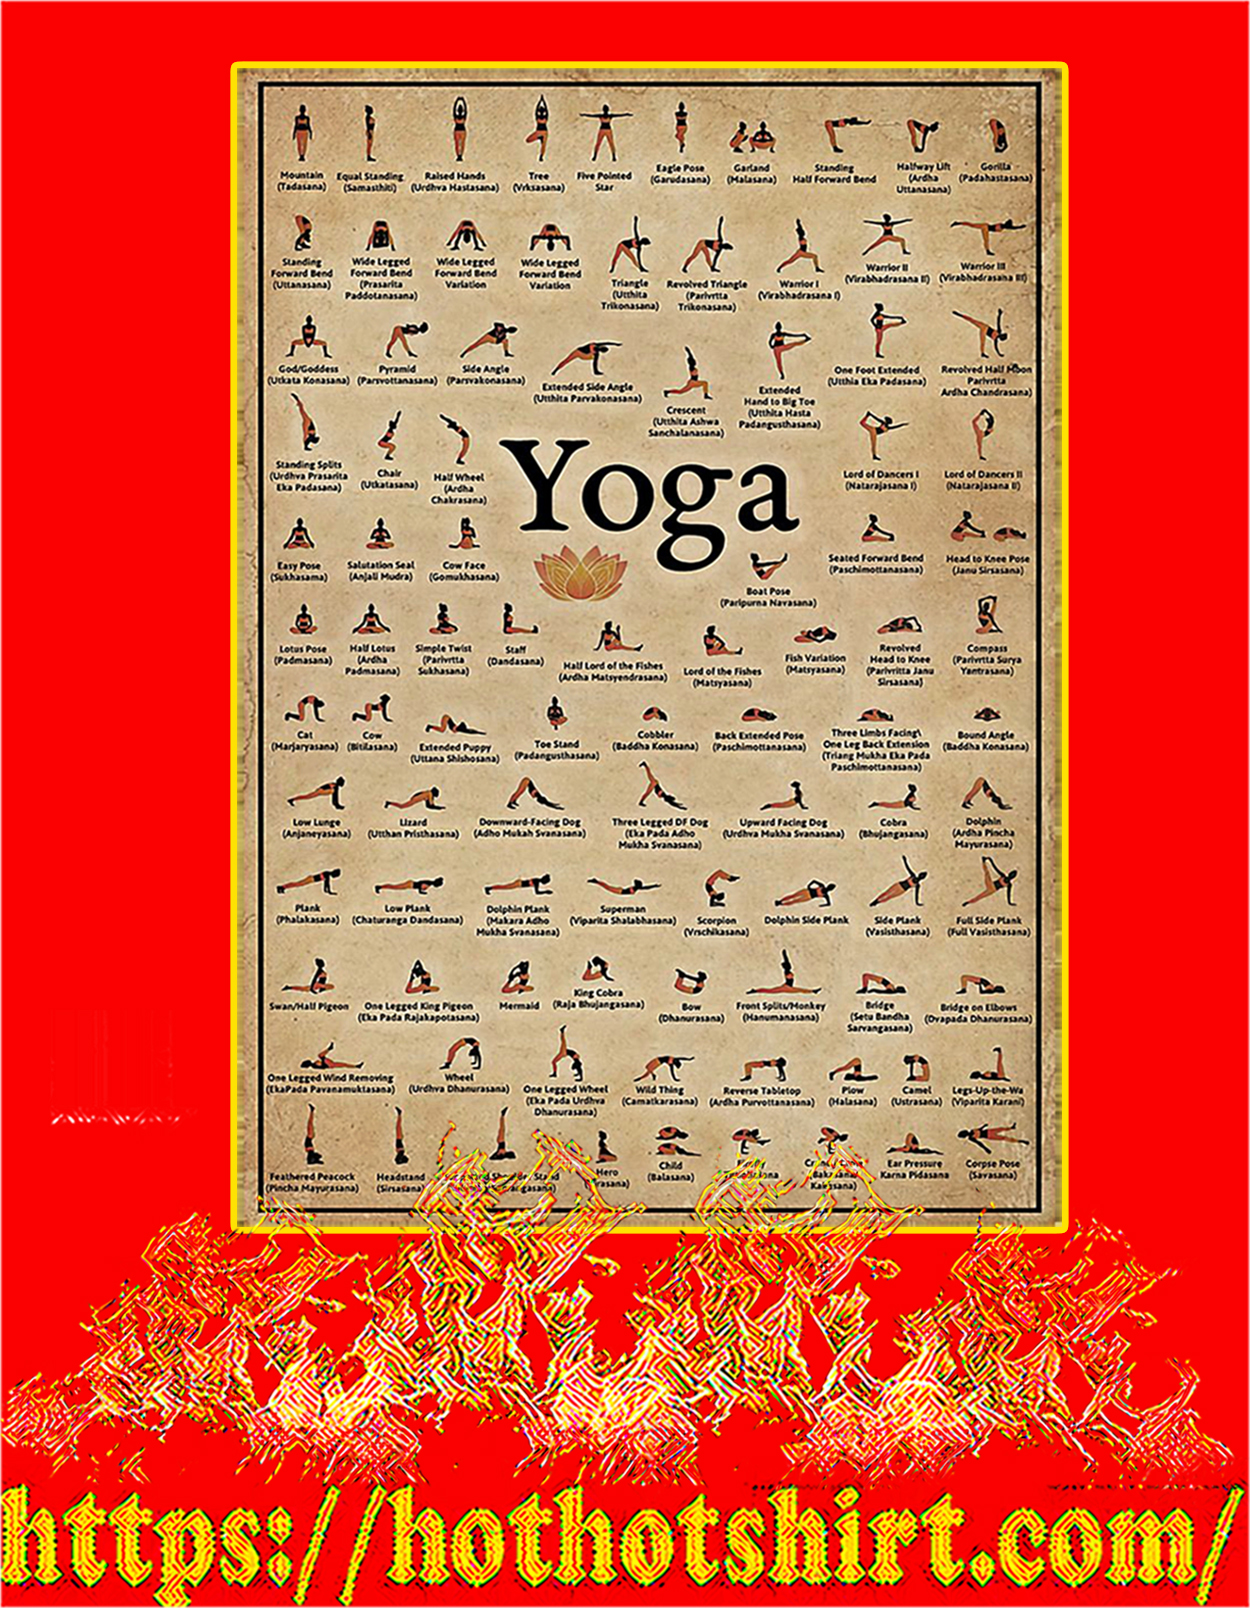 Yoga poses poster - A3